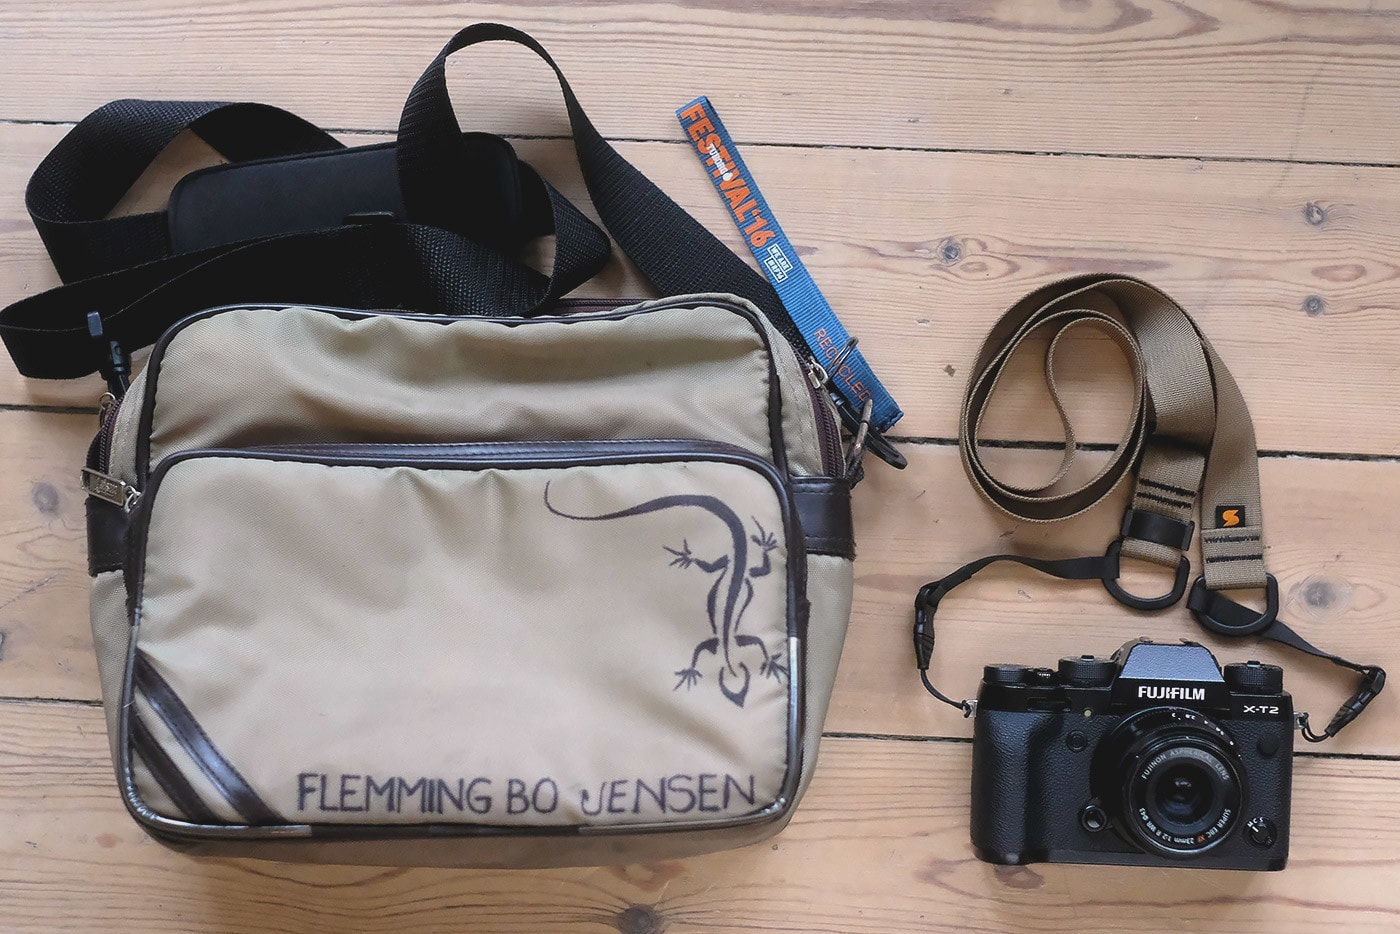 Flemming Bo Jensen's Fuji X-T2 with Simplr Mirrorless Camera Strap